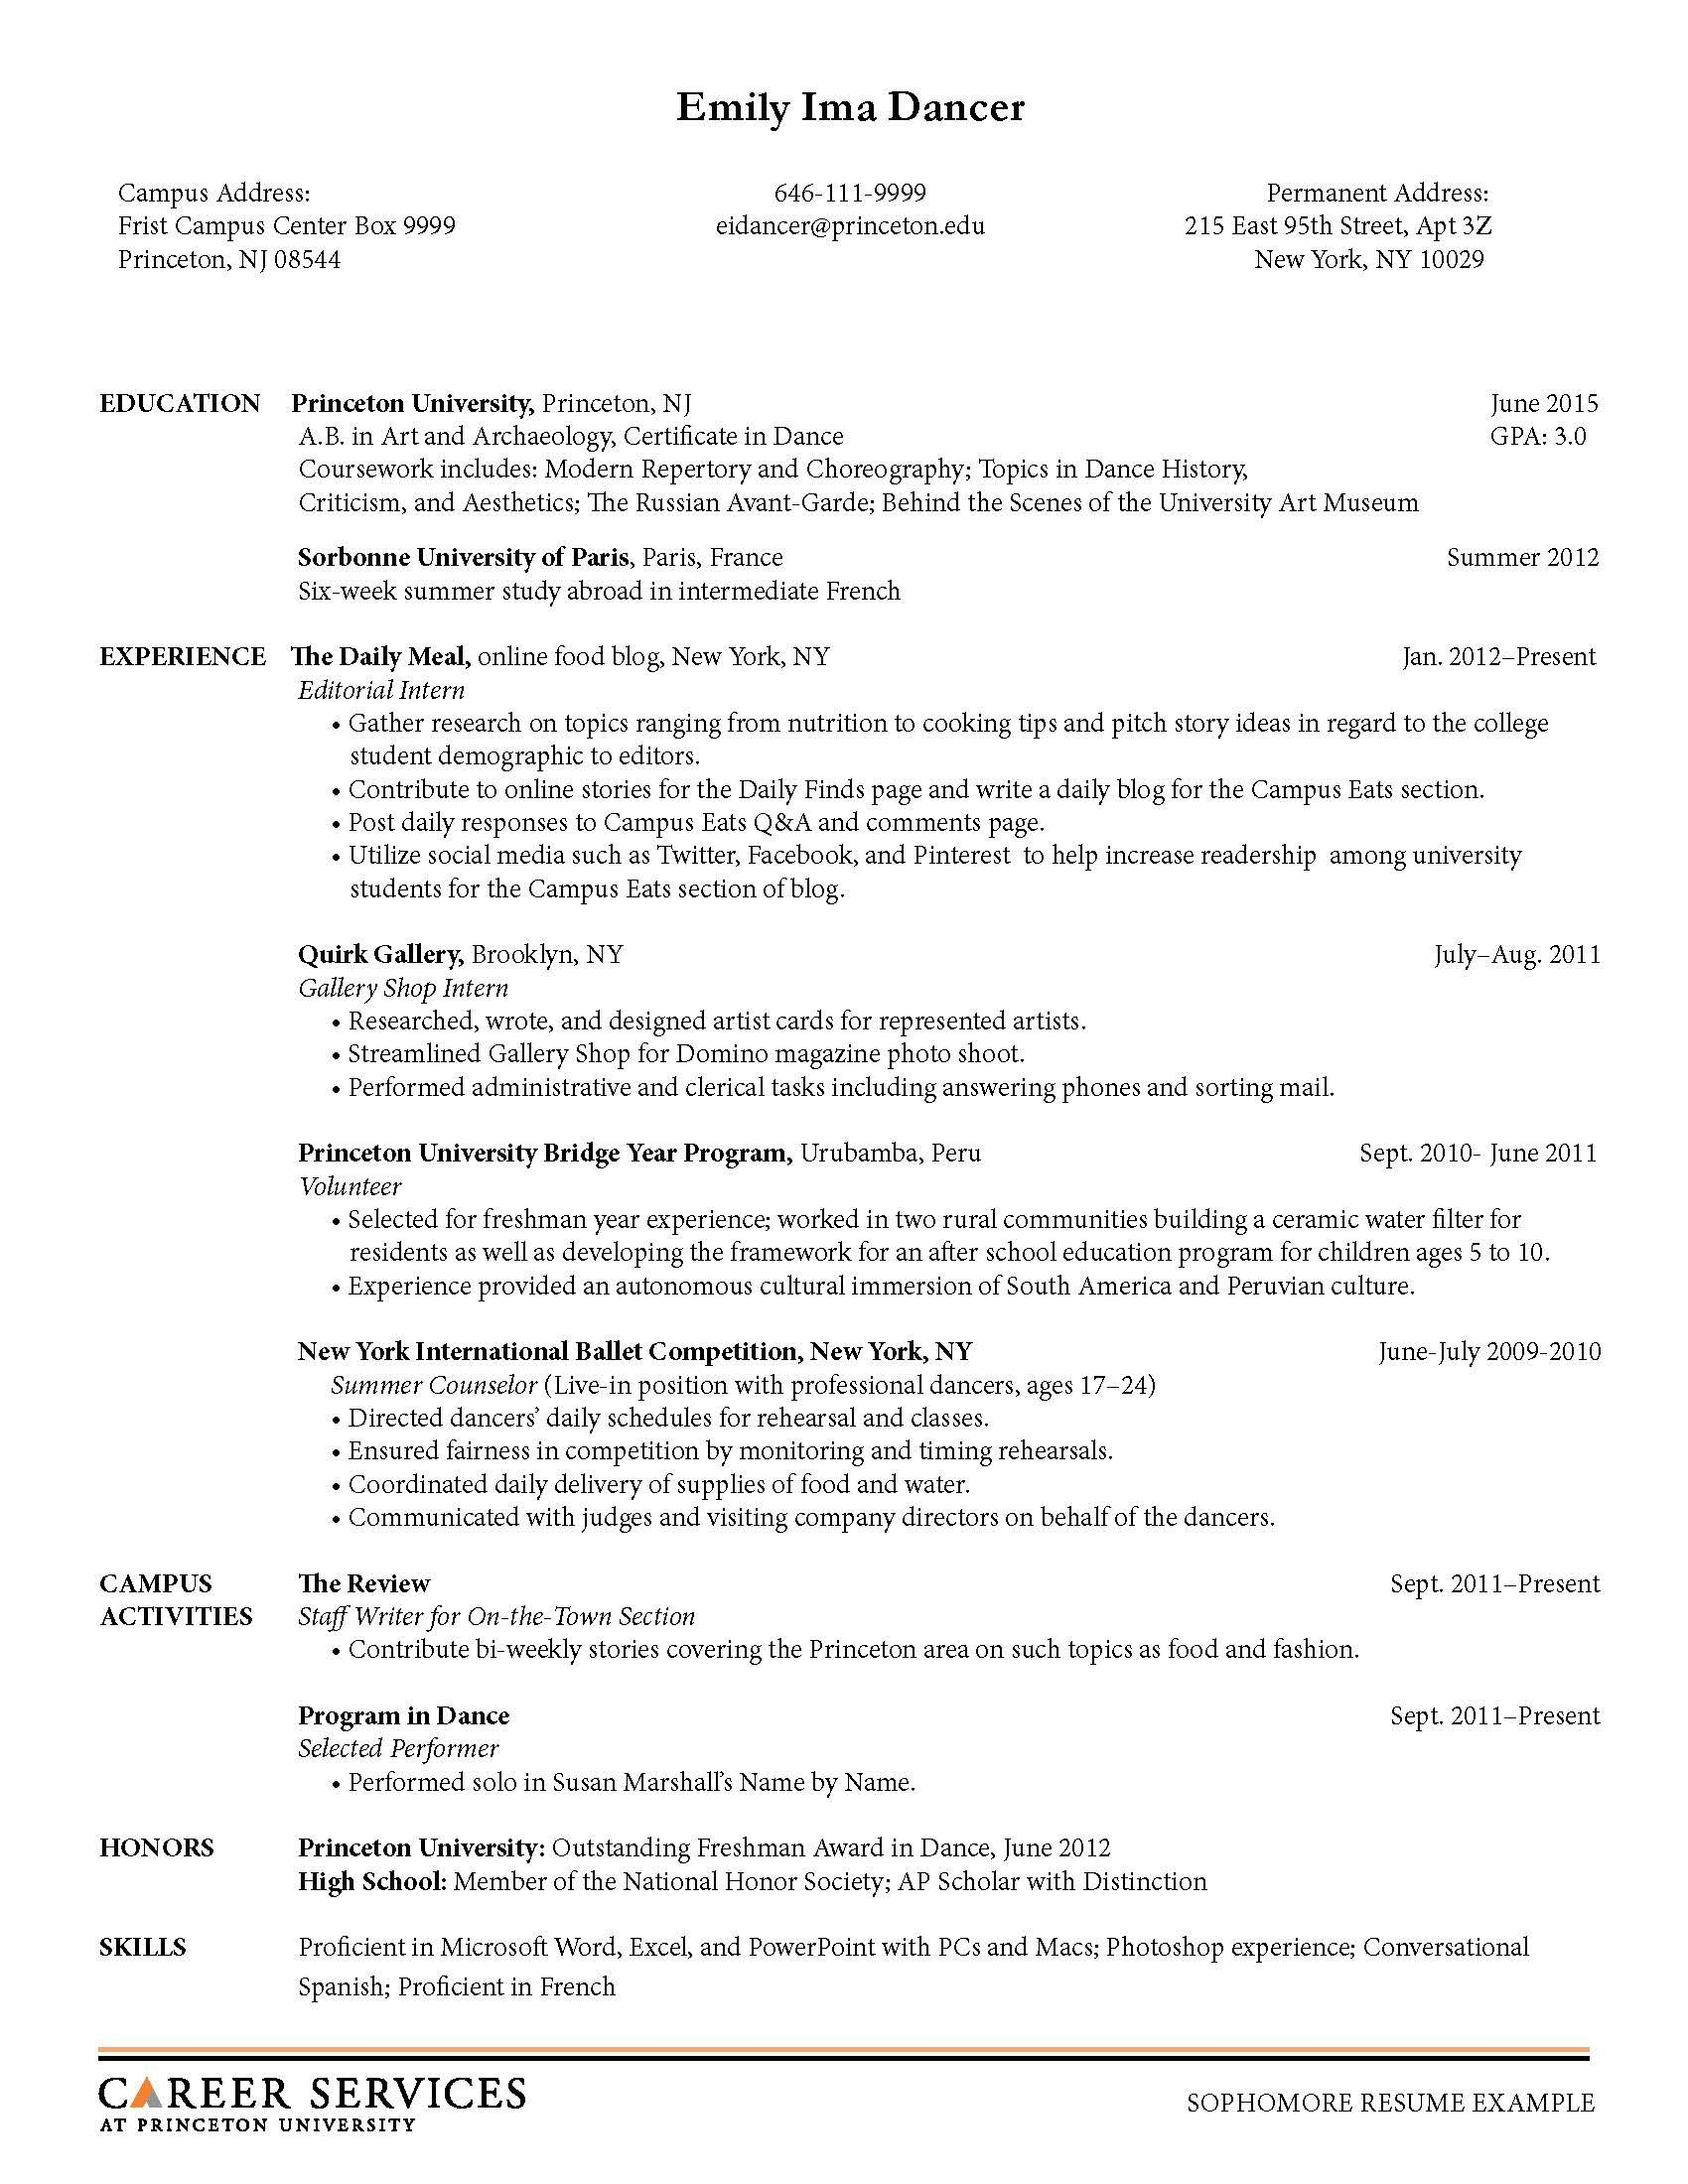 Opposenewapstandardsus  Personable Sample Resume Resume And Career On Pinterest With Lovely Resume Samples For Customer Service Besides Underwriter Resume Furthermore Healthcare Resumes With Cool Optimal Resume Acc Also Chef Resumes In Addition Resume Template Online And Gamestop Resume As Well As How To Make Your Own Resume Additionally Resume Free Builder From Pinterestcom With Opposenewapstandardsus  Lovely Sample Resume Resume And Career On Pinterest With Cool Resume Samples For Customer Service Besides Underwriter Resume Furthermore Healthcare Resumes And Personable Optimal Resume Acc Also Chef Resumes In Addition Resume Template Online From Pinterestcom